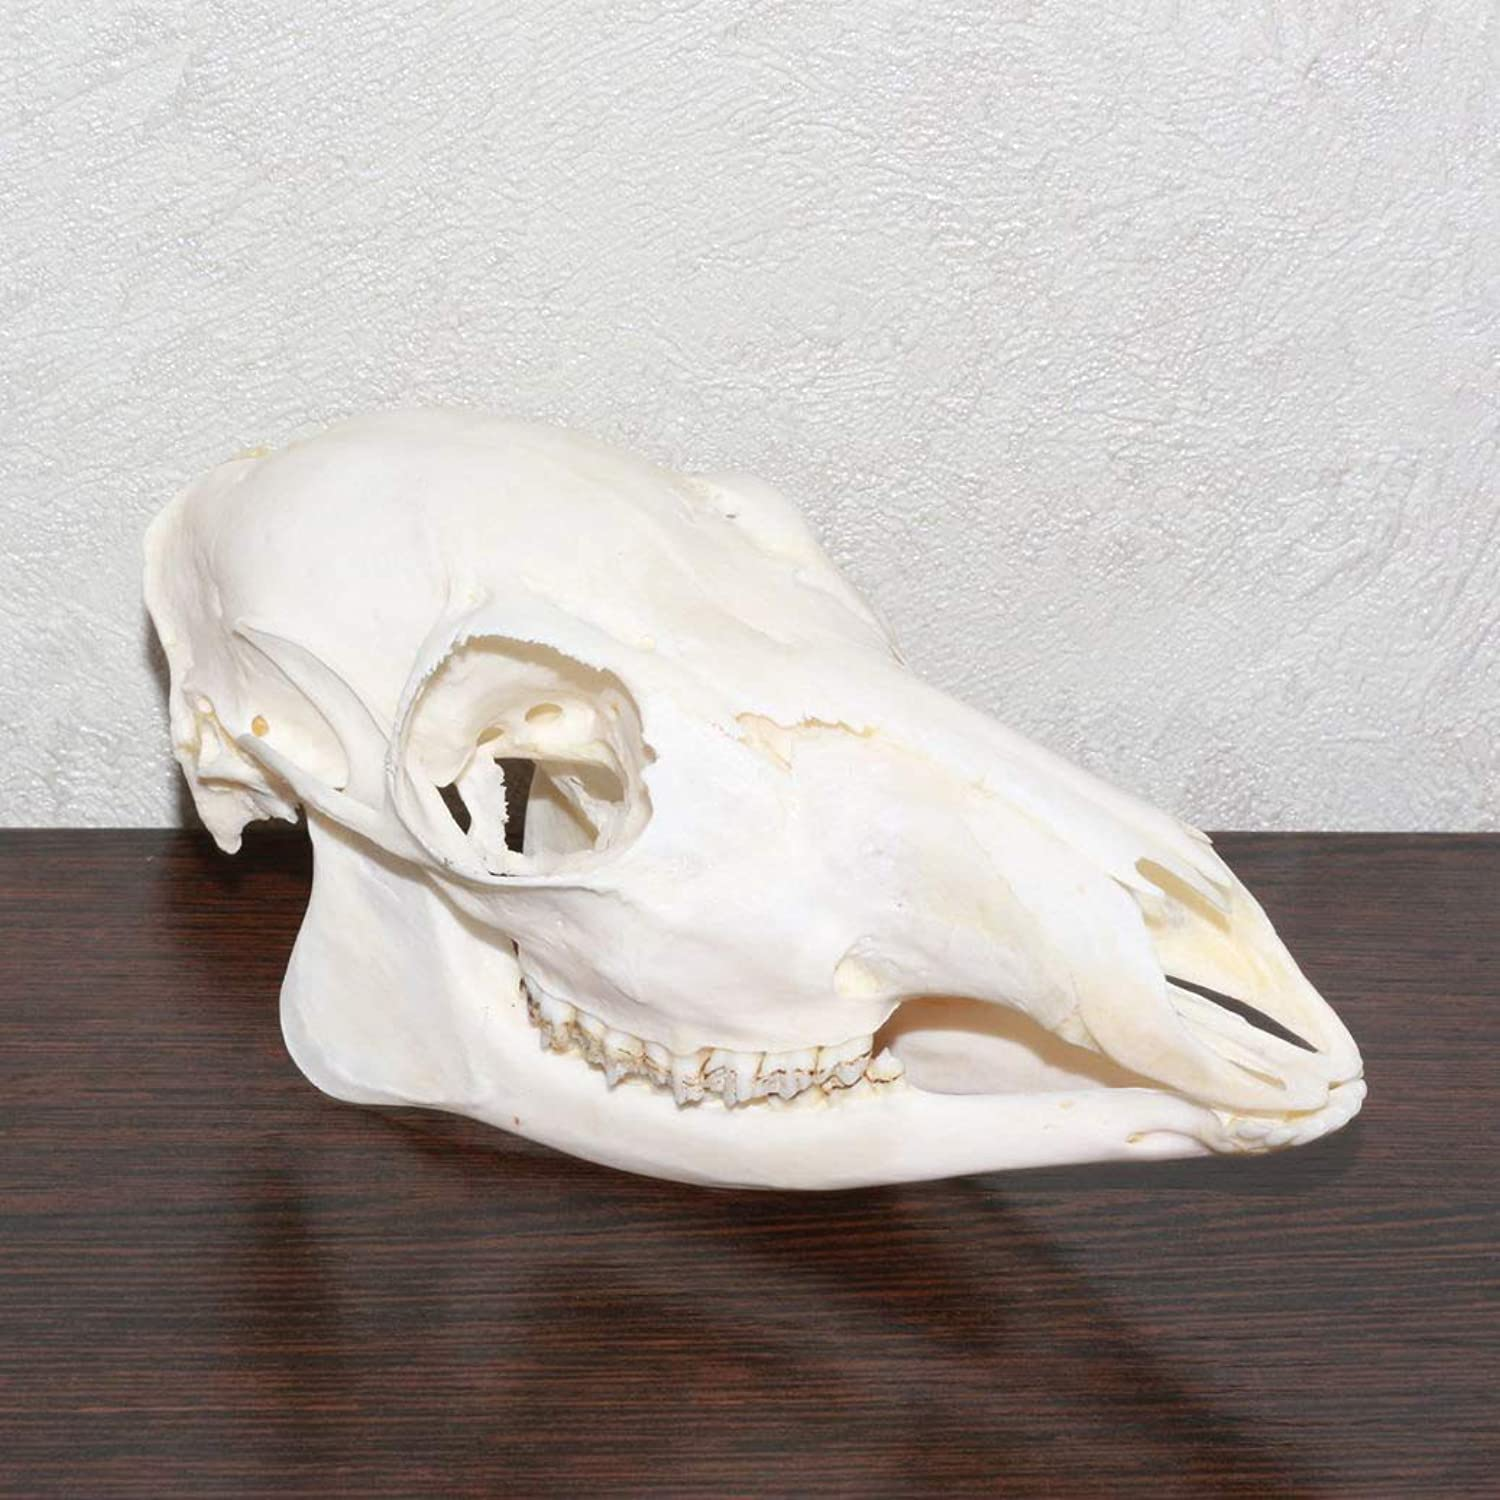 Siberian Musk Deer Taxidermy Skull  MuskDeer Cleaned Skull, Jaws, Bones, Skeleton, Teeth Sale  Real, Decor, LIFESIZE, Genuine  ST4690